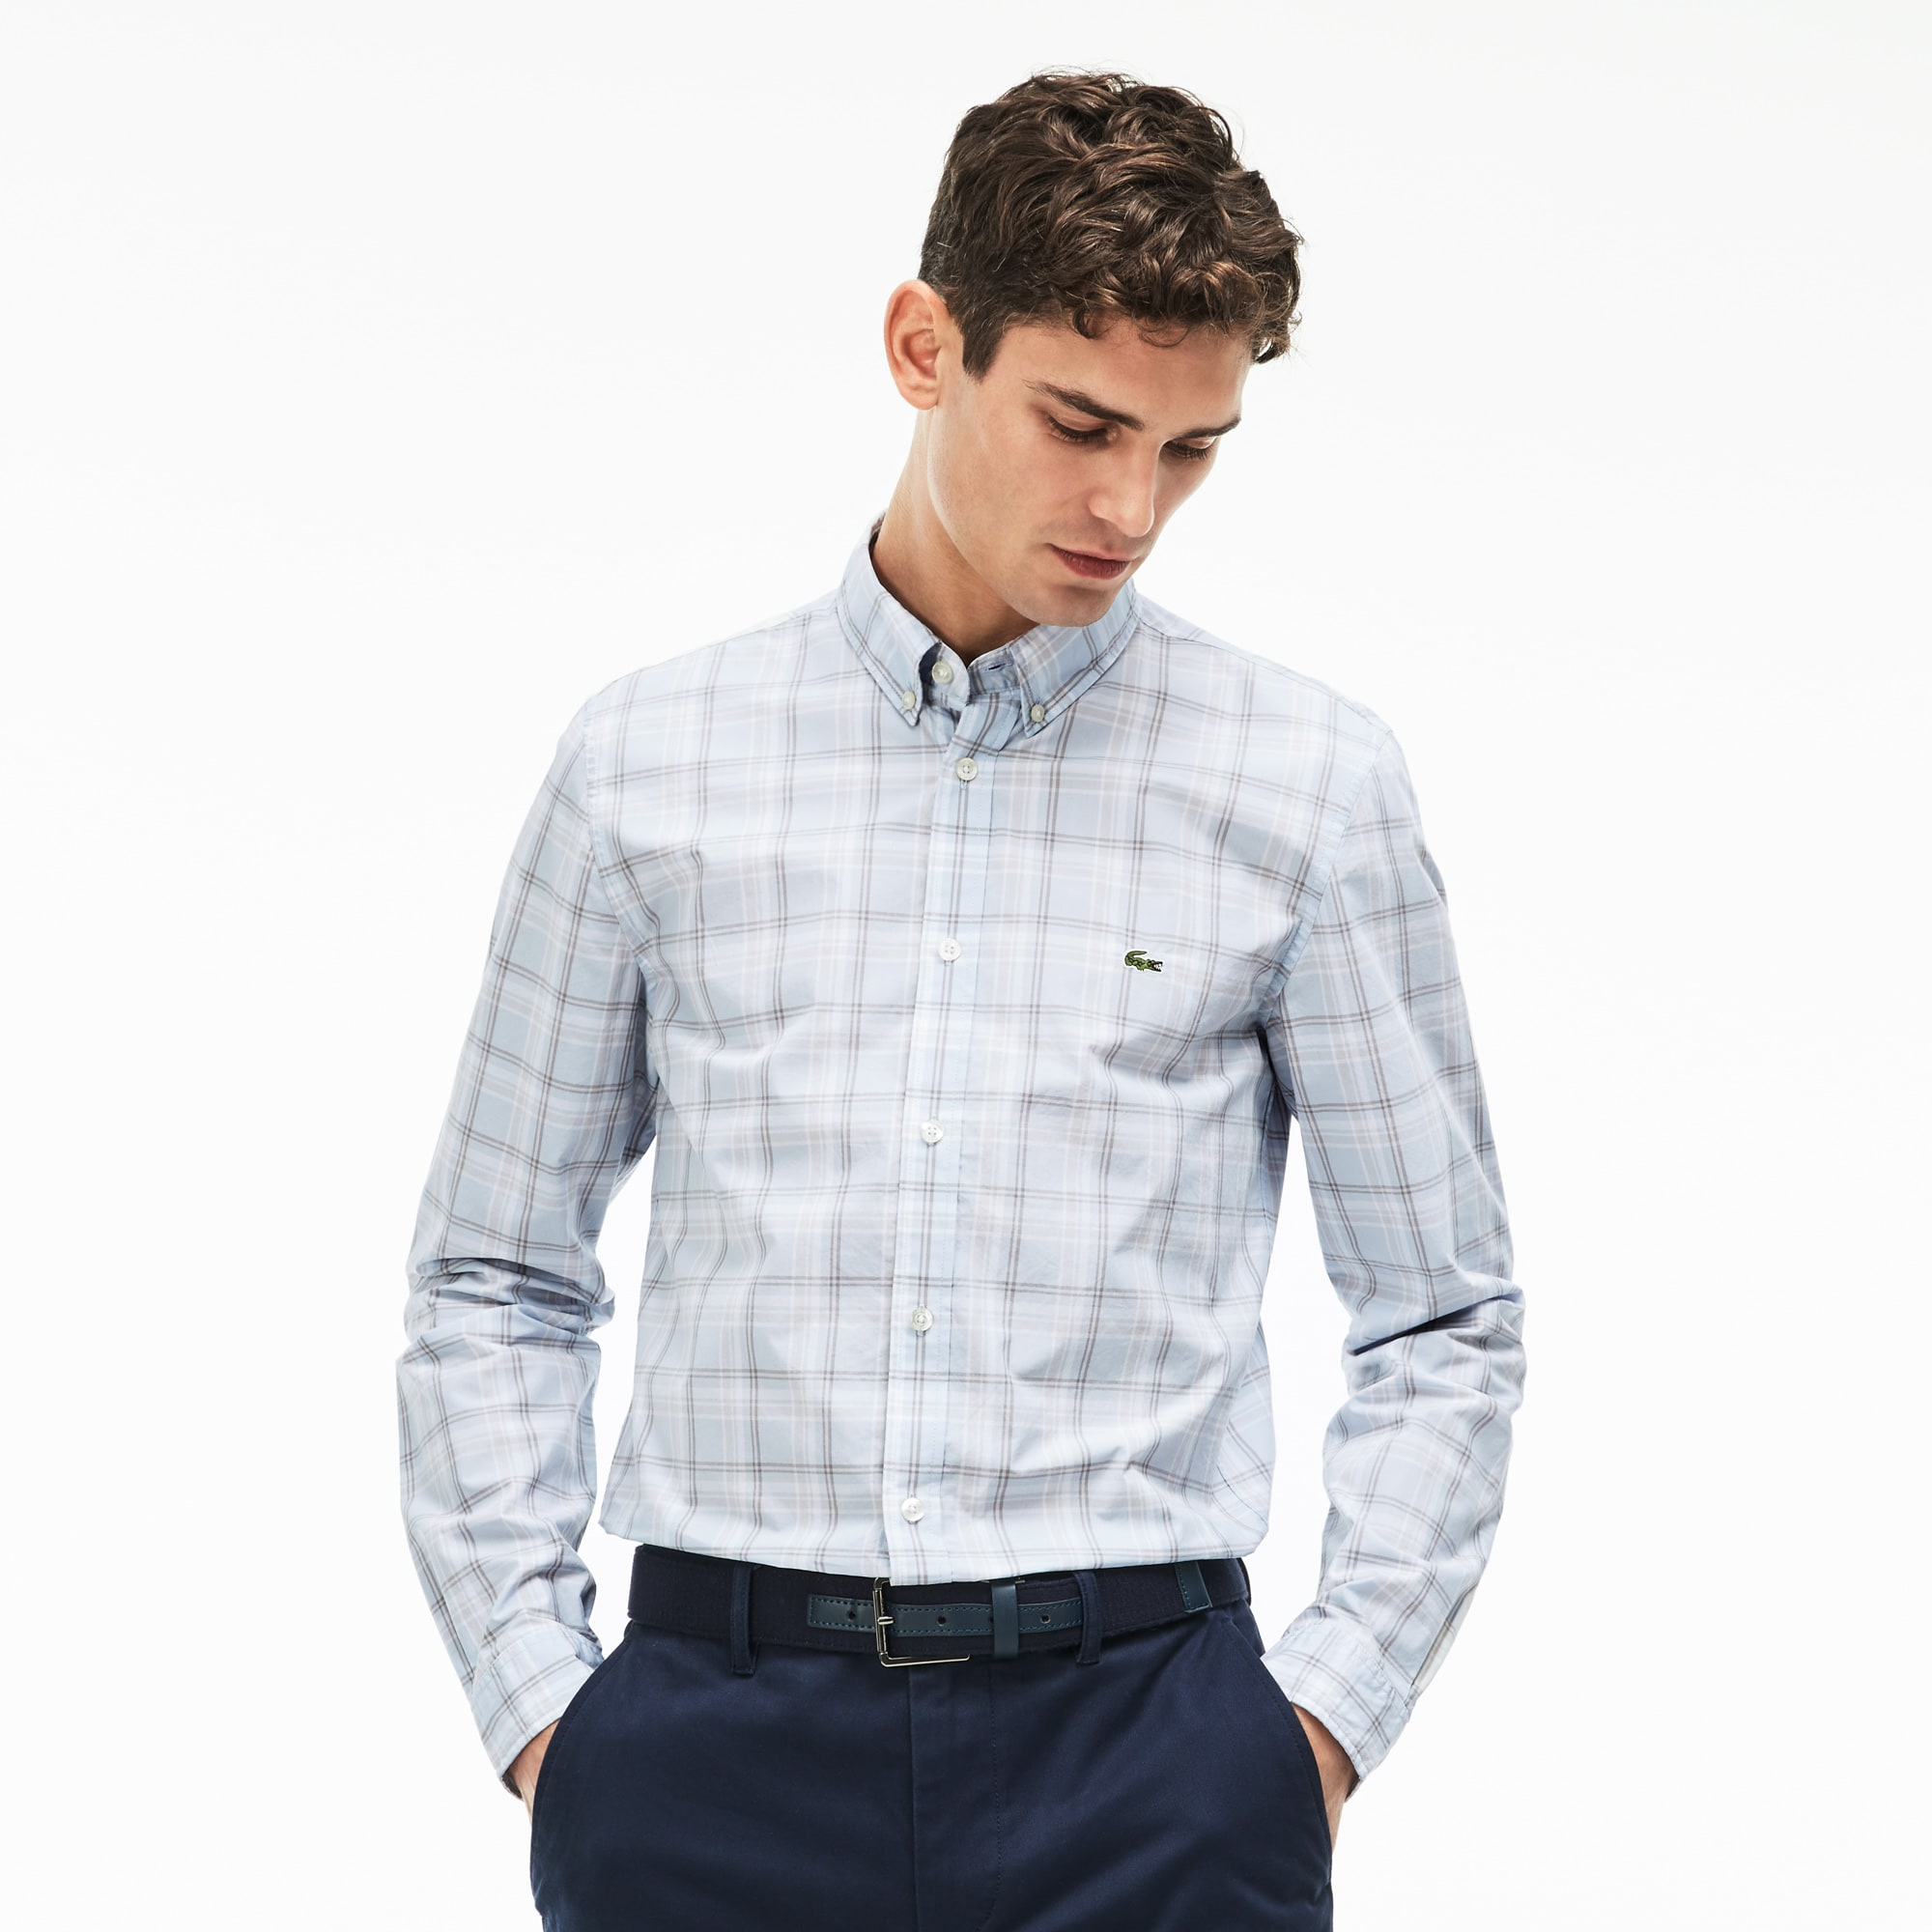 Men's Slim Fit Wide Check Cotton Poplin Shirt